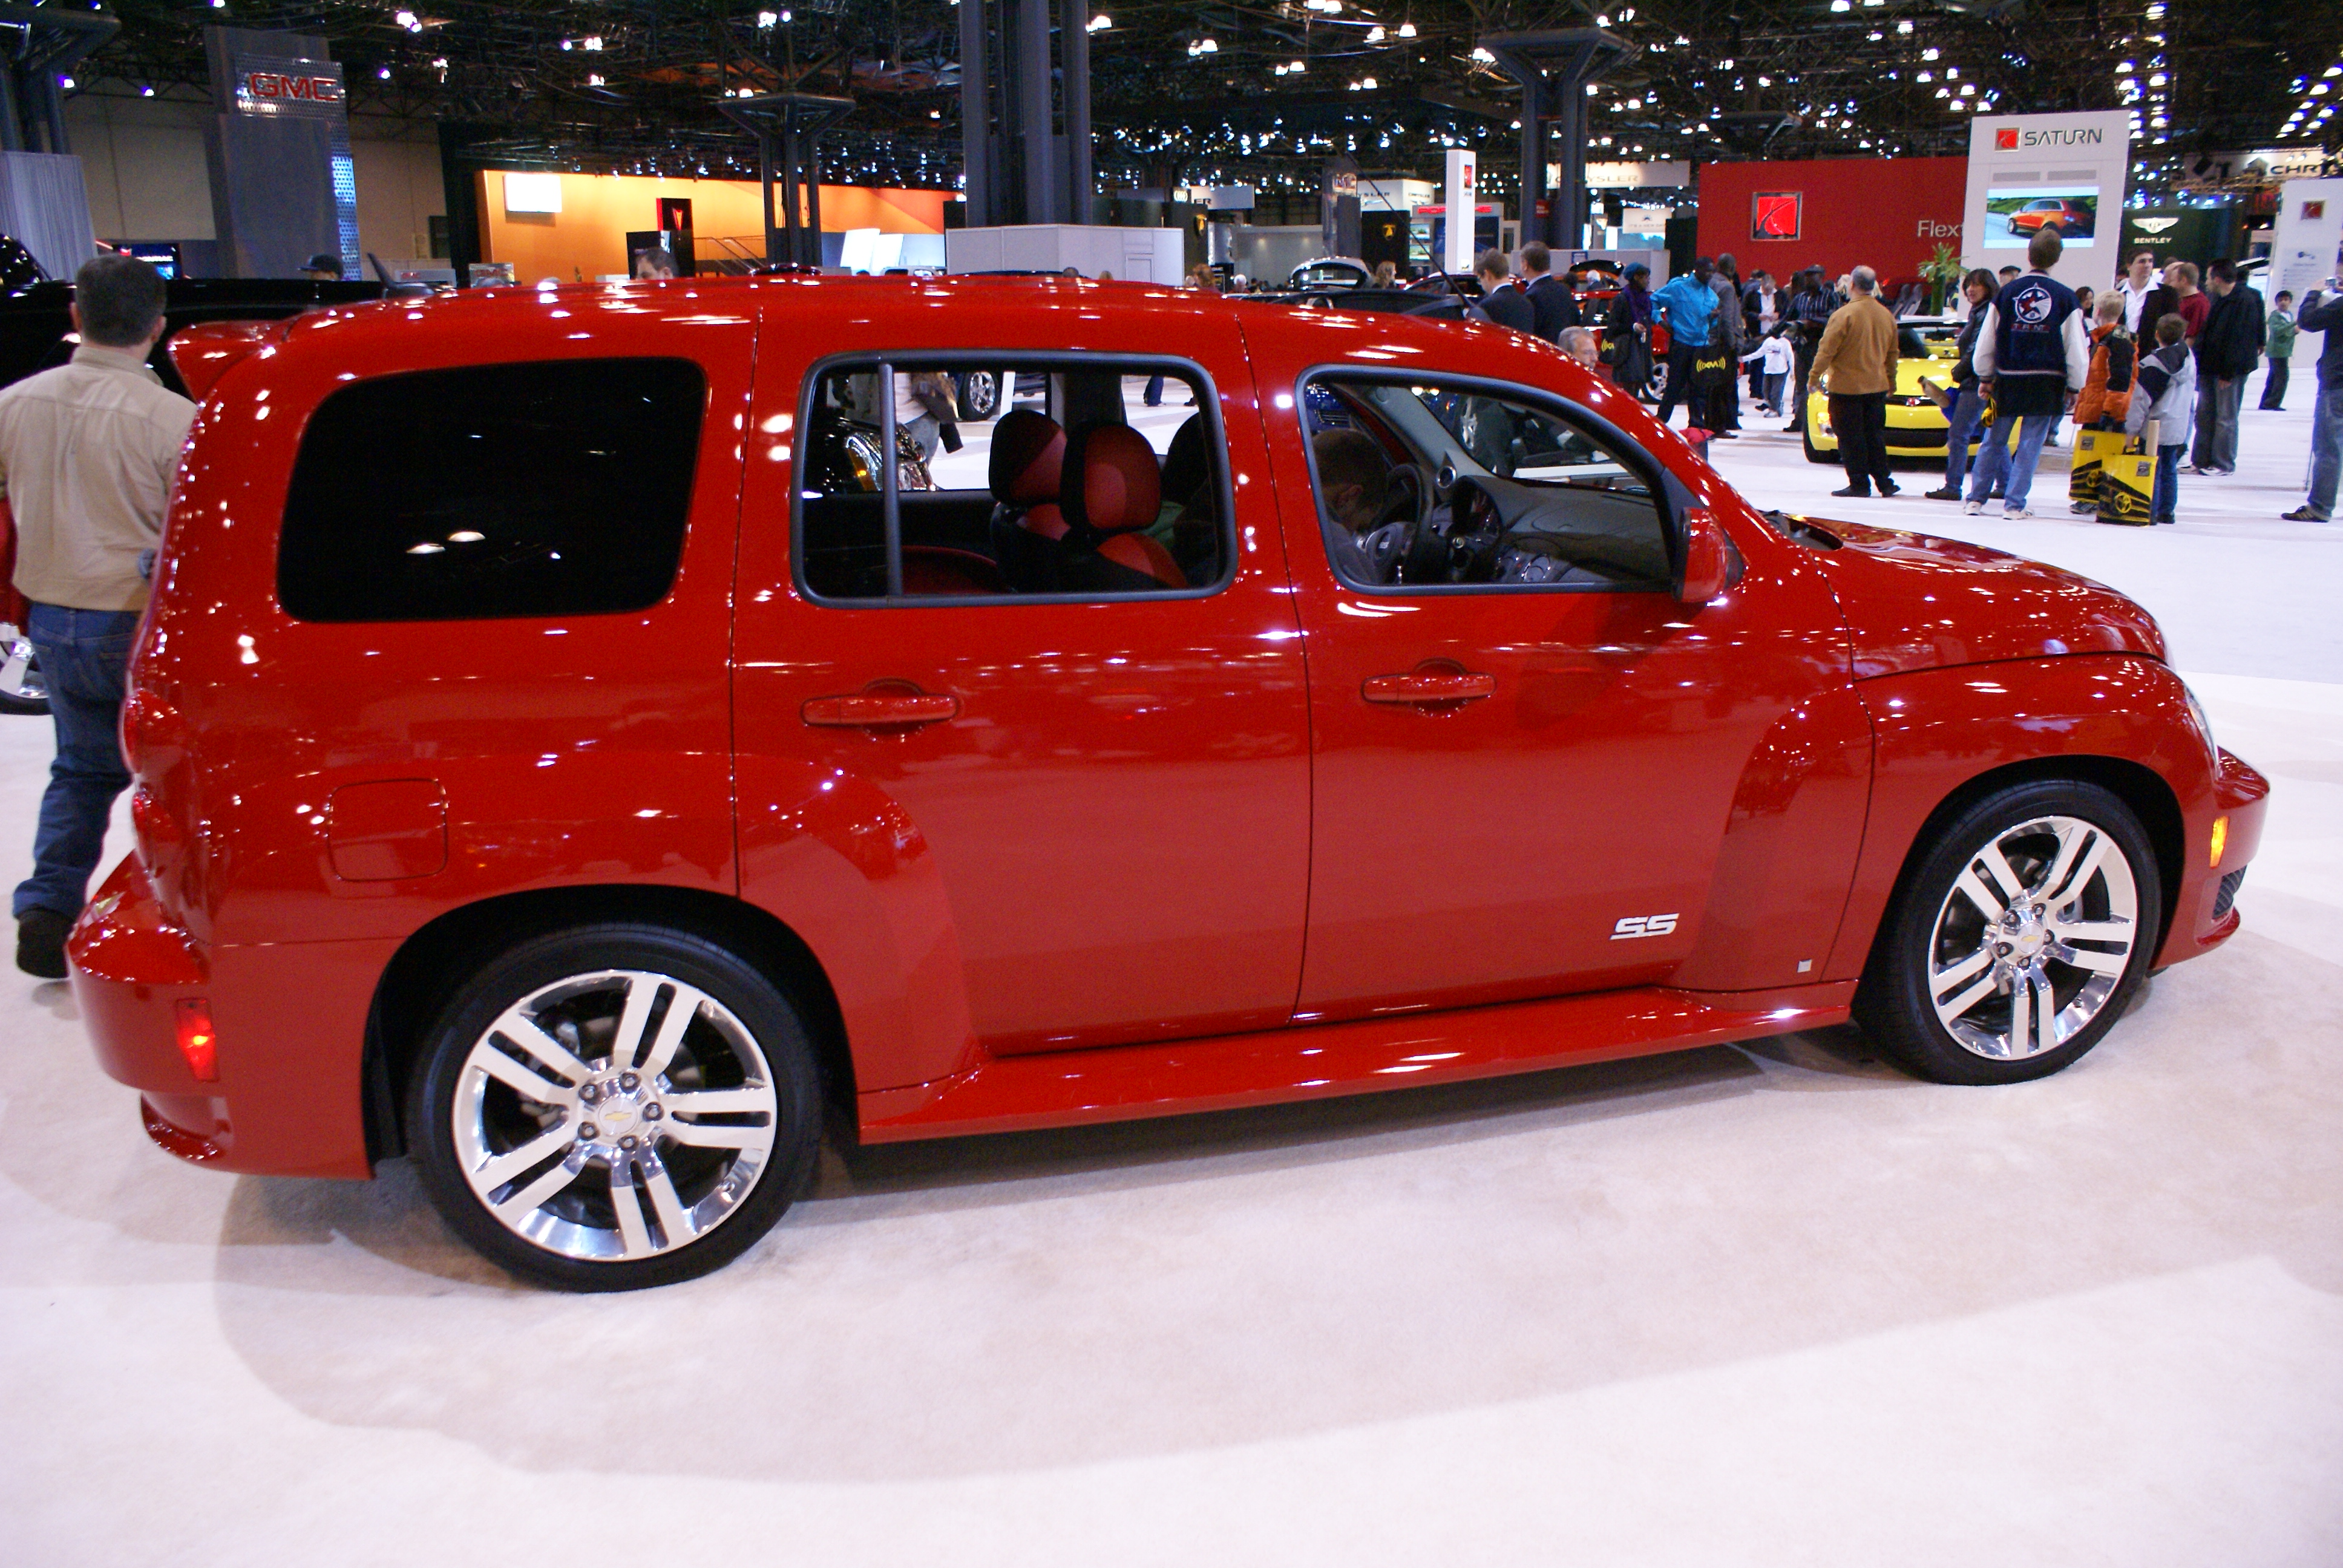 File:Bright Red Car On Display At New York International Auto Show.jpg